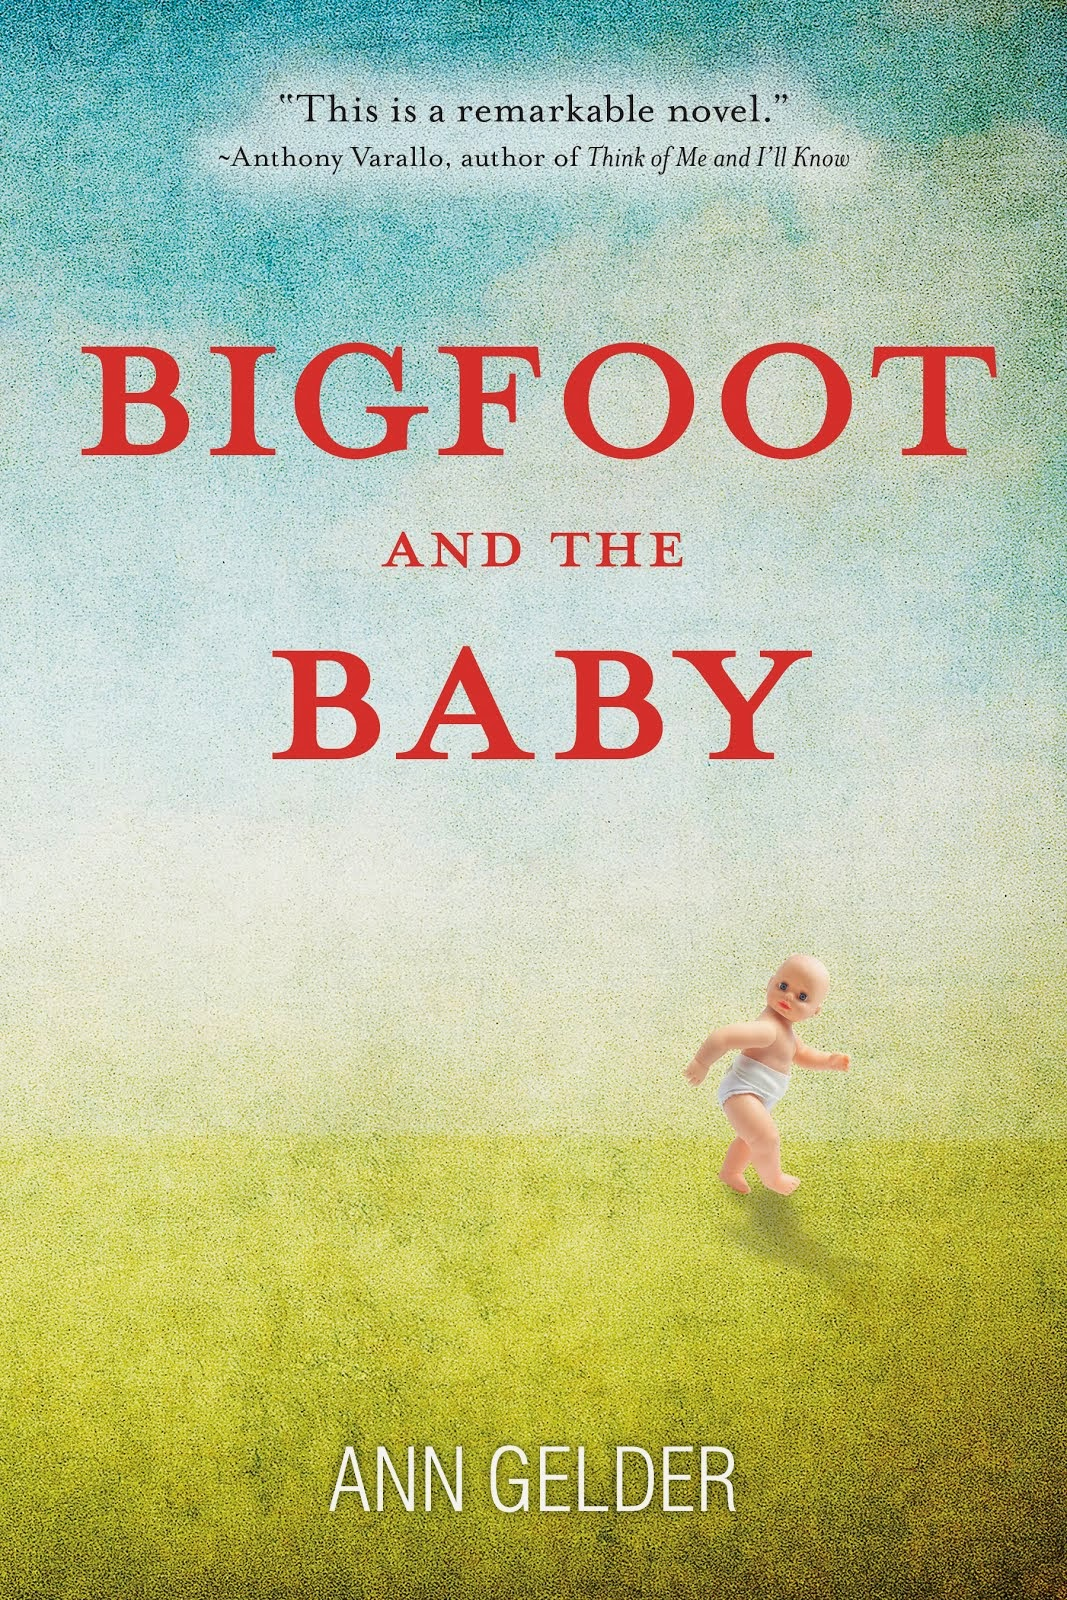 Bigfoot and the Baby: Coming June 2014!